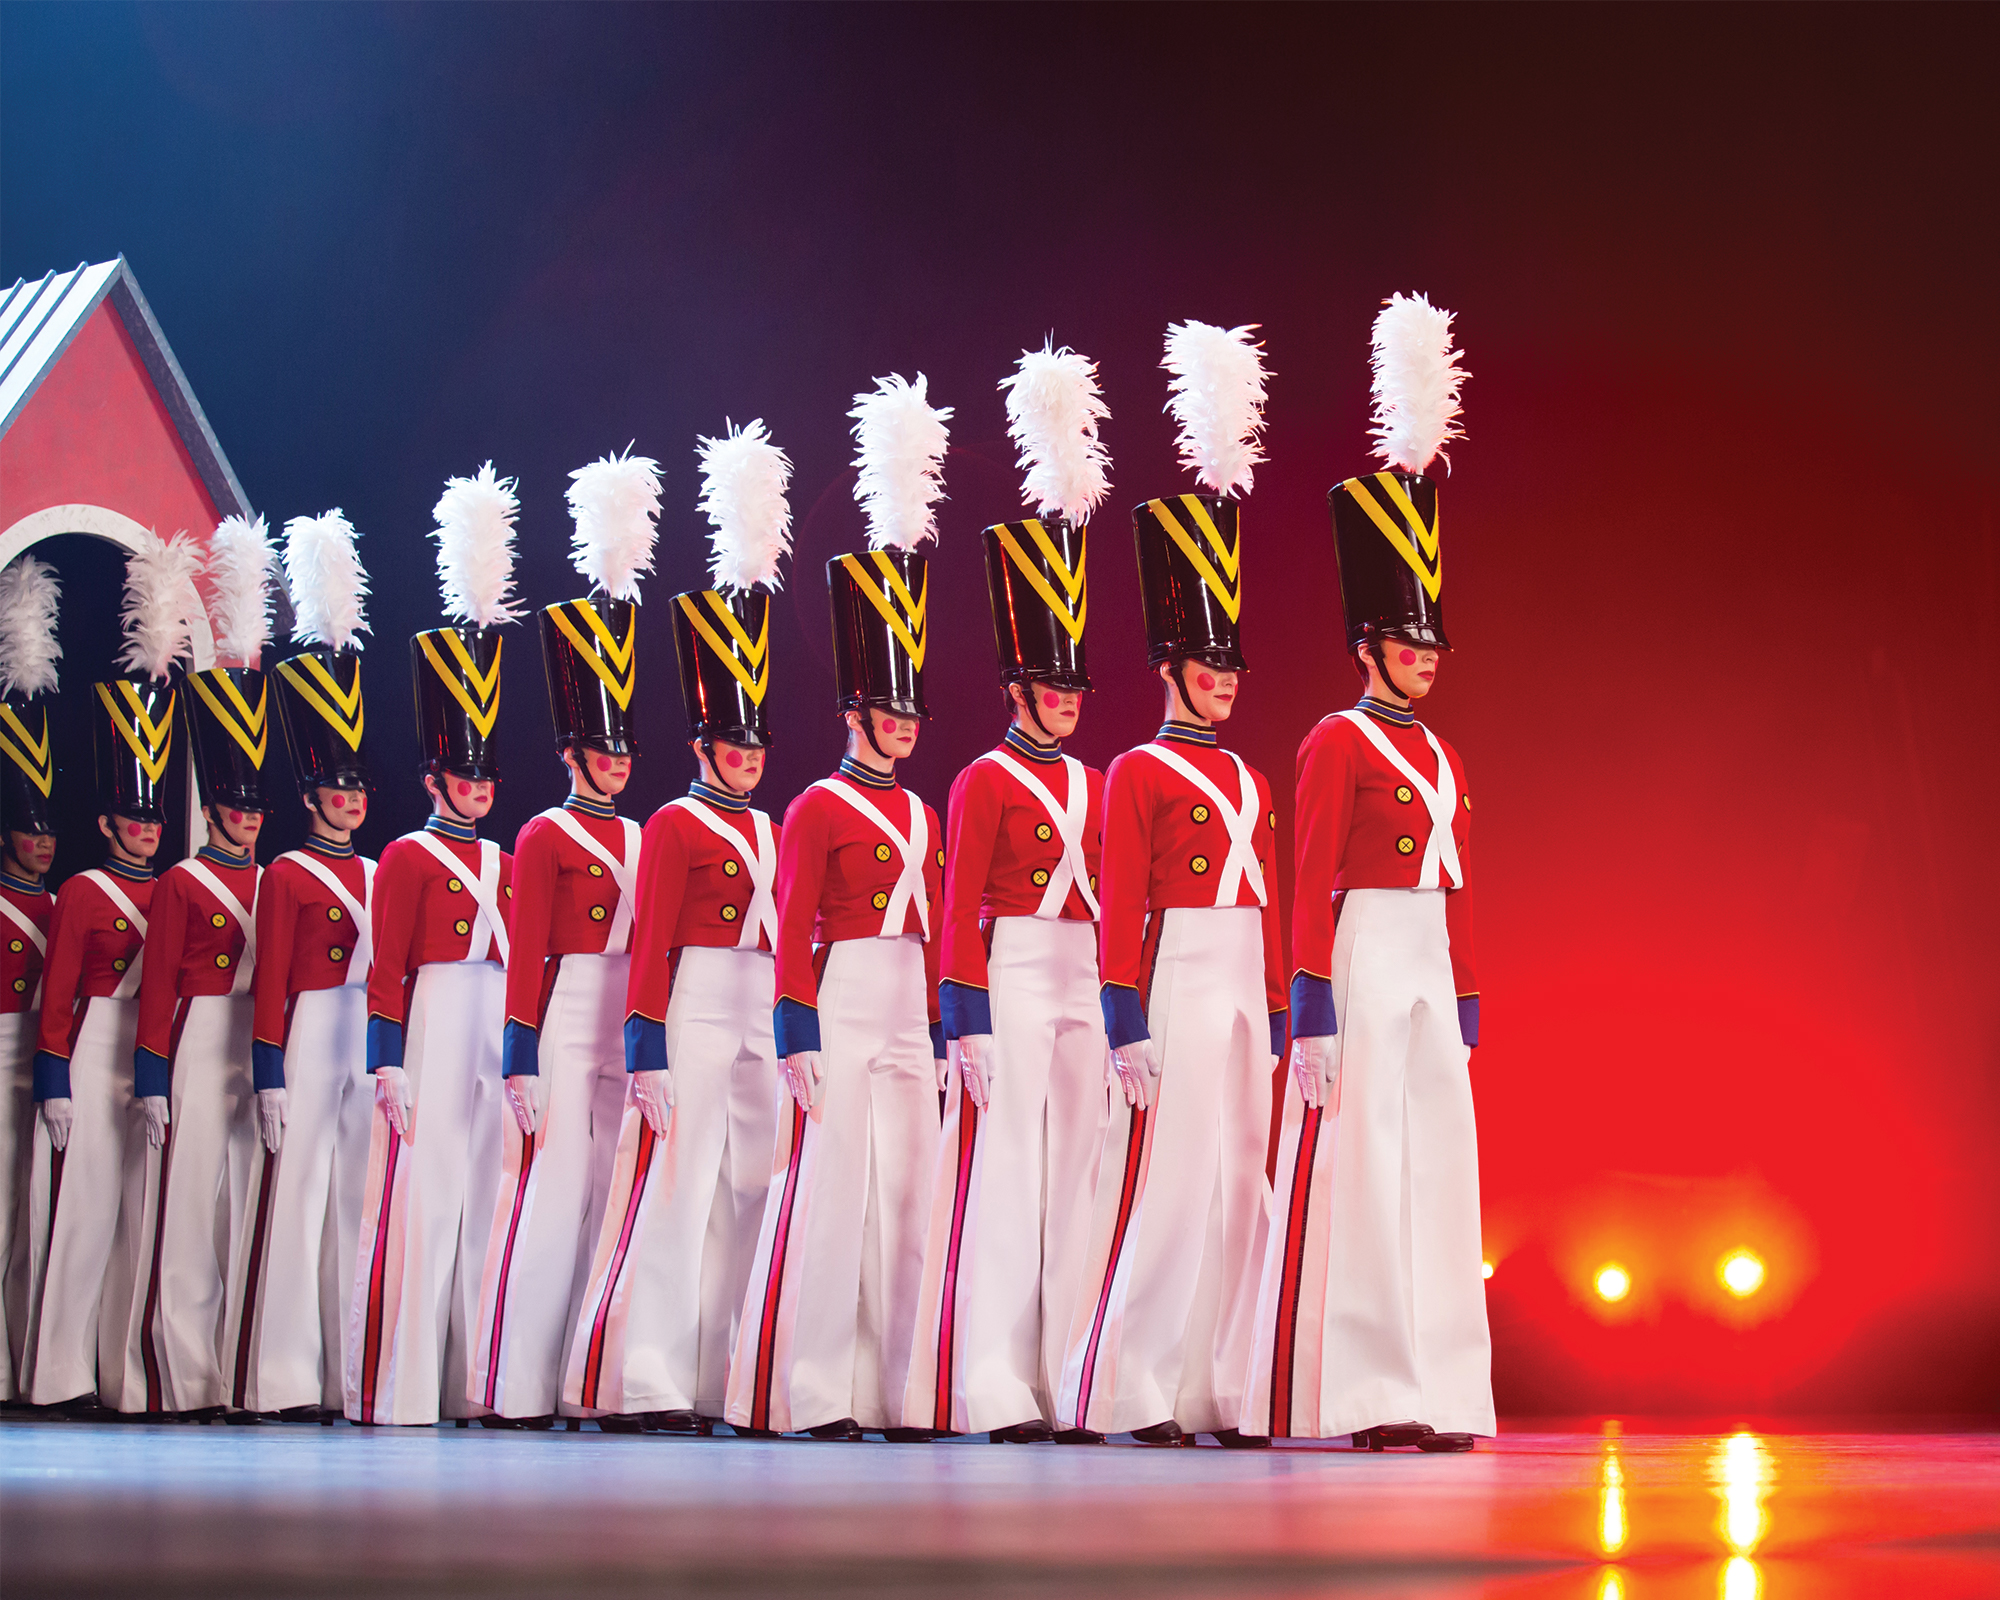 ChristmasSpectacular19_productionphotos_2000x1600_20160323_XW5A2948-e.jpg